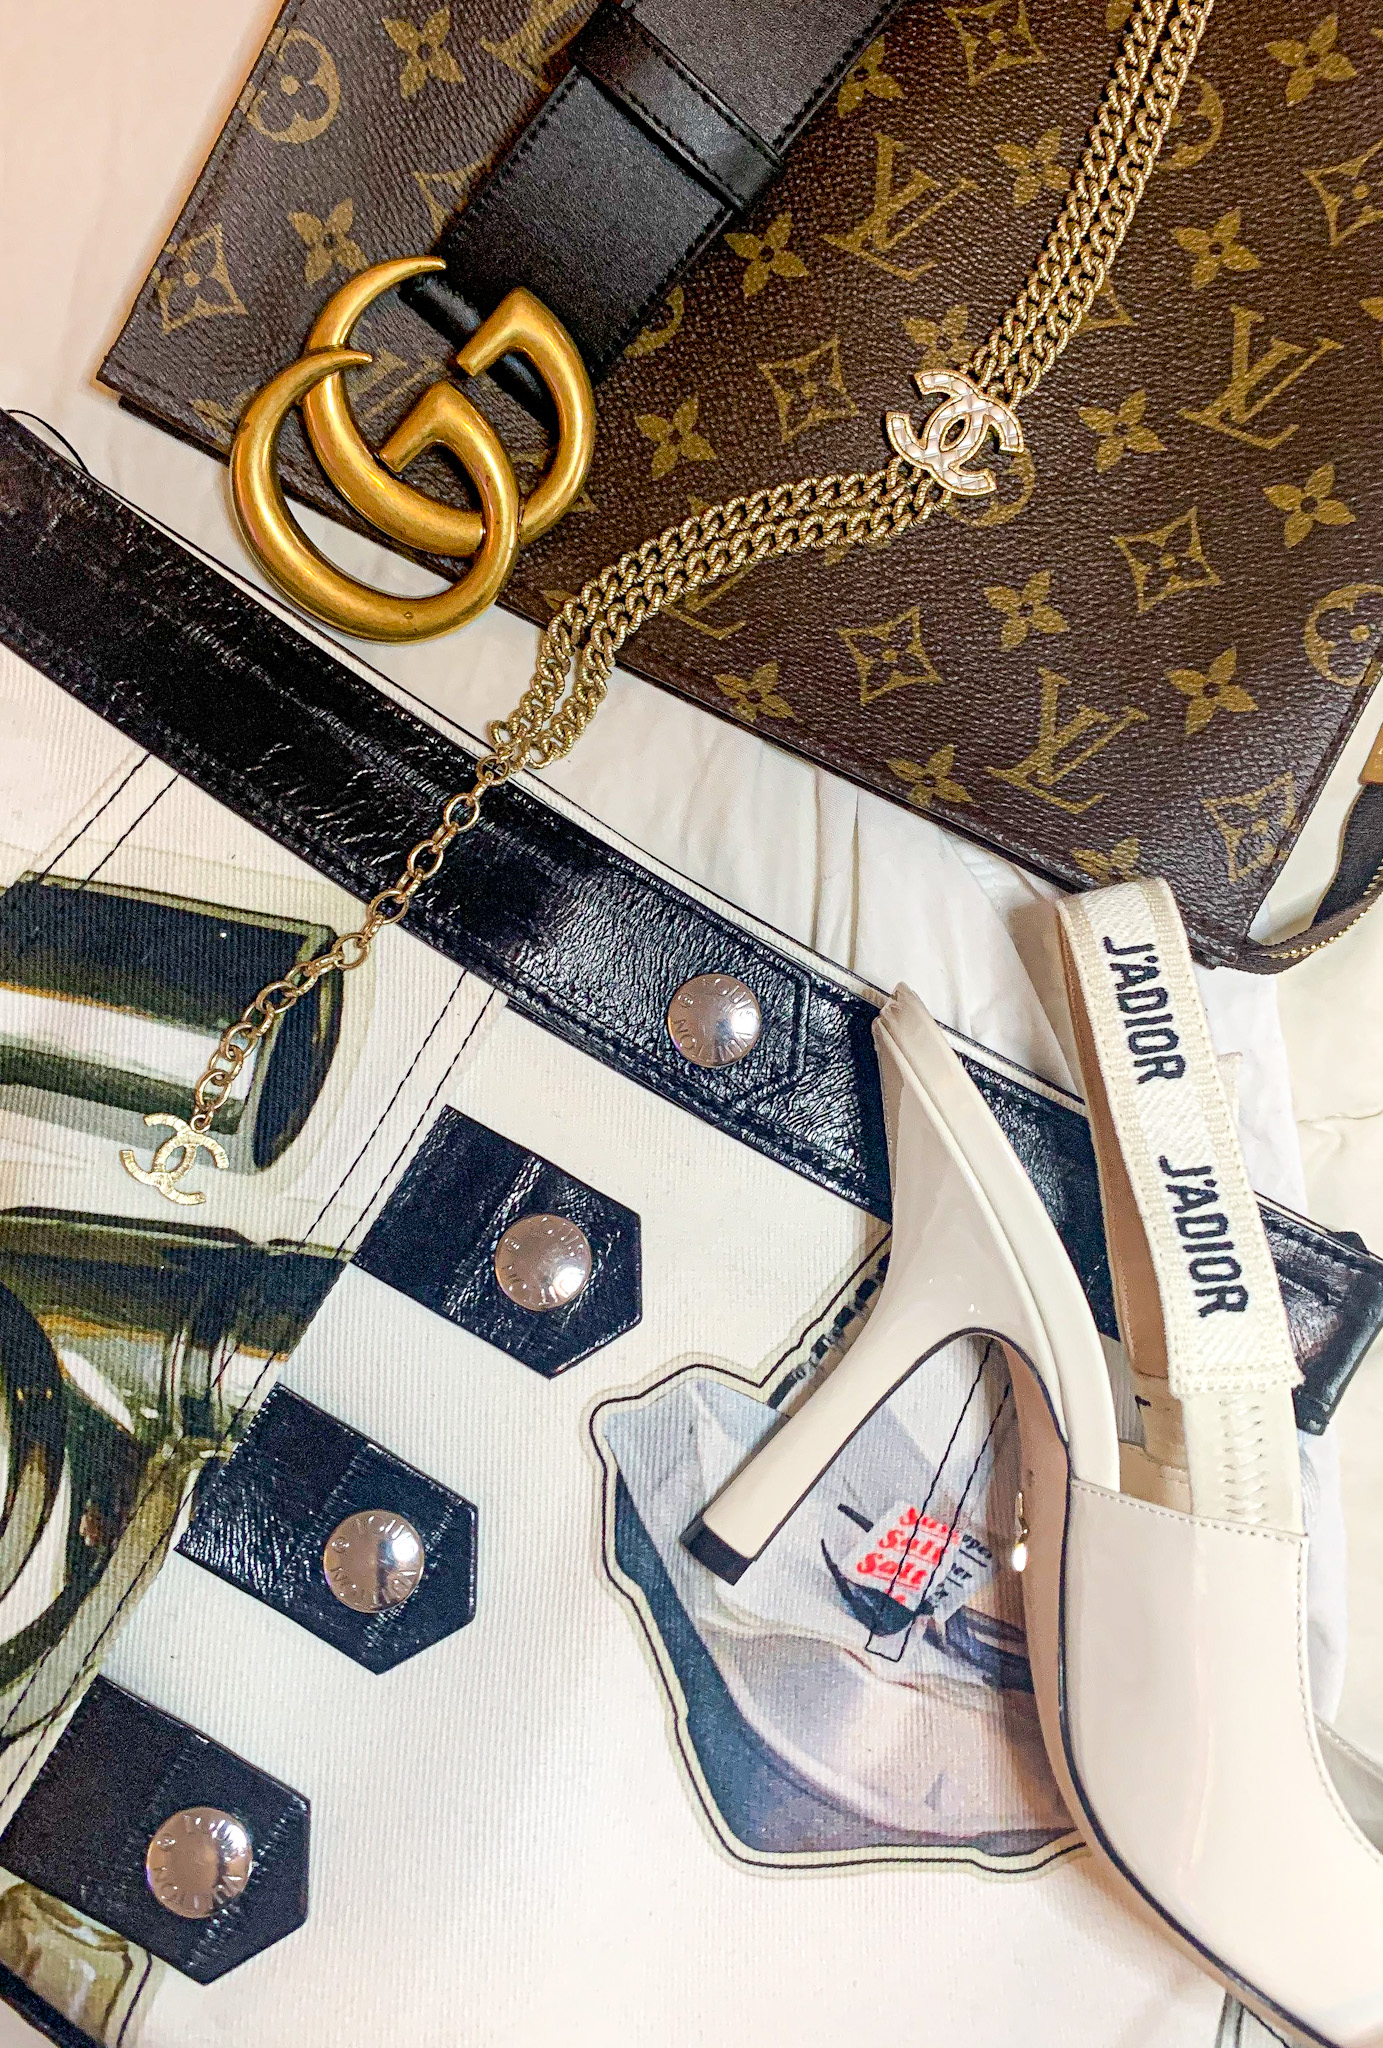 Designer Must Haves: The Best Items to Invest In